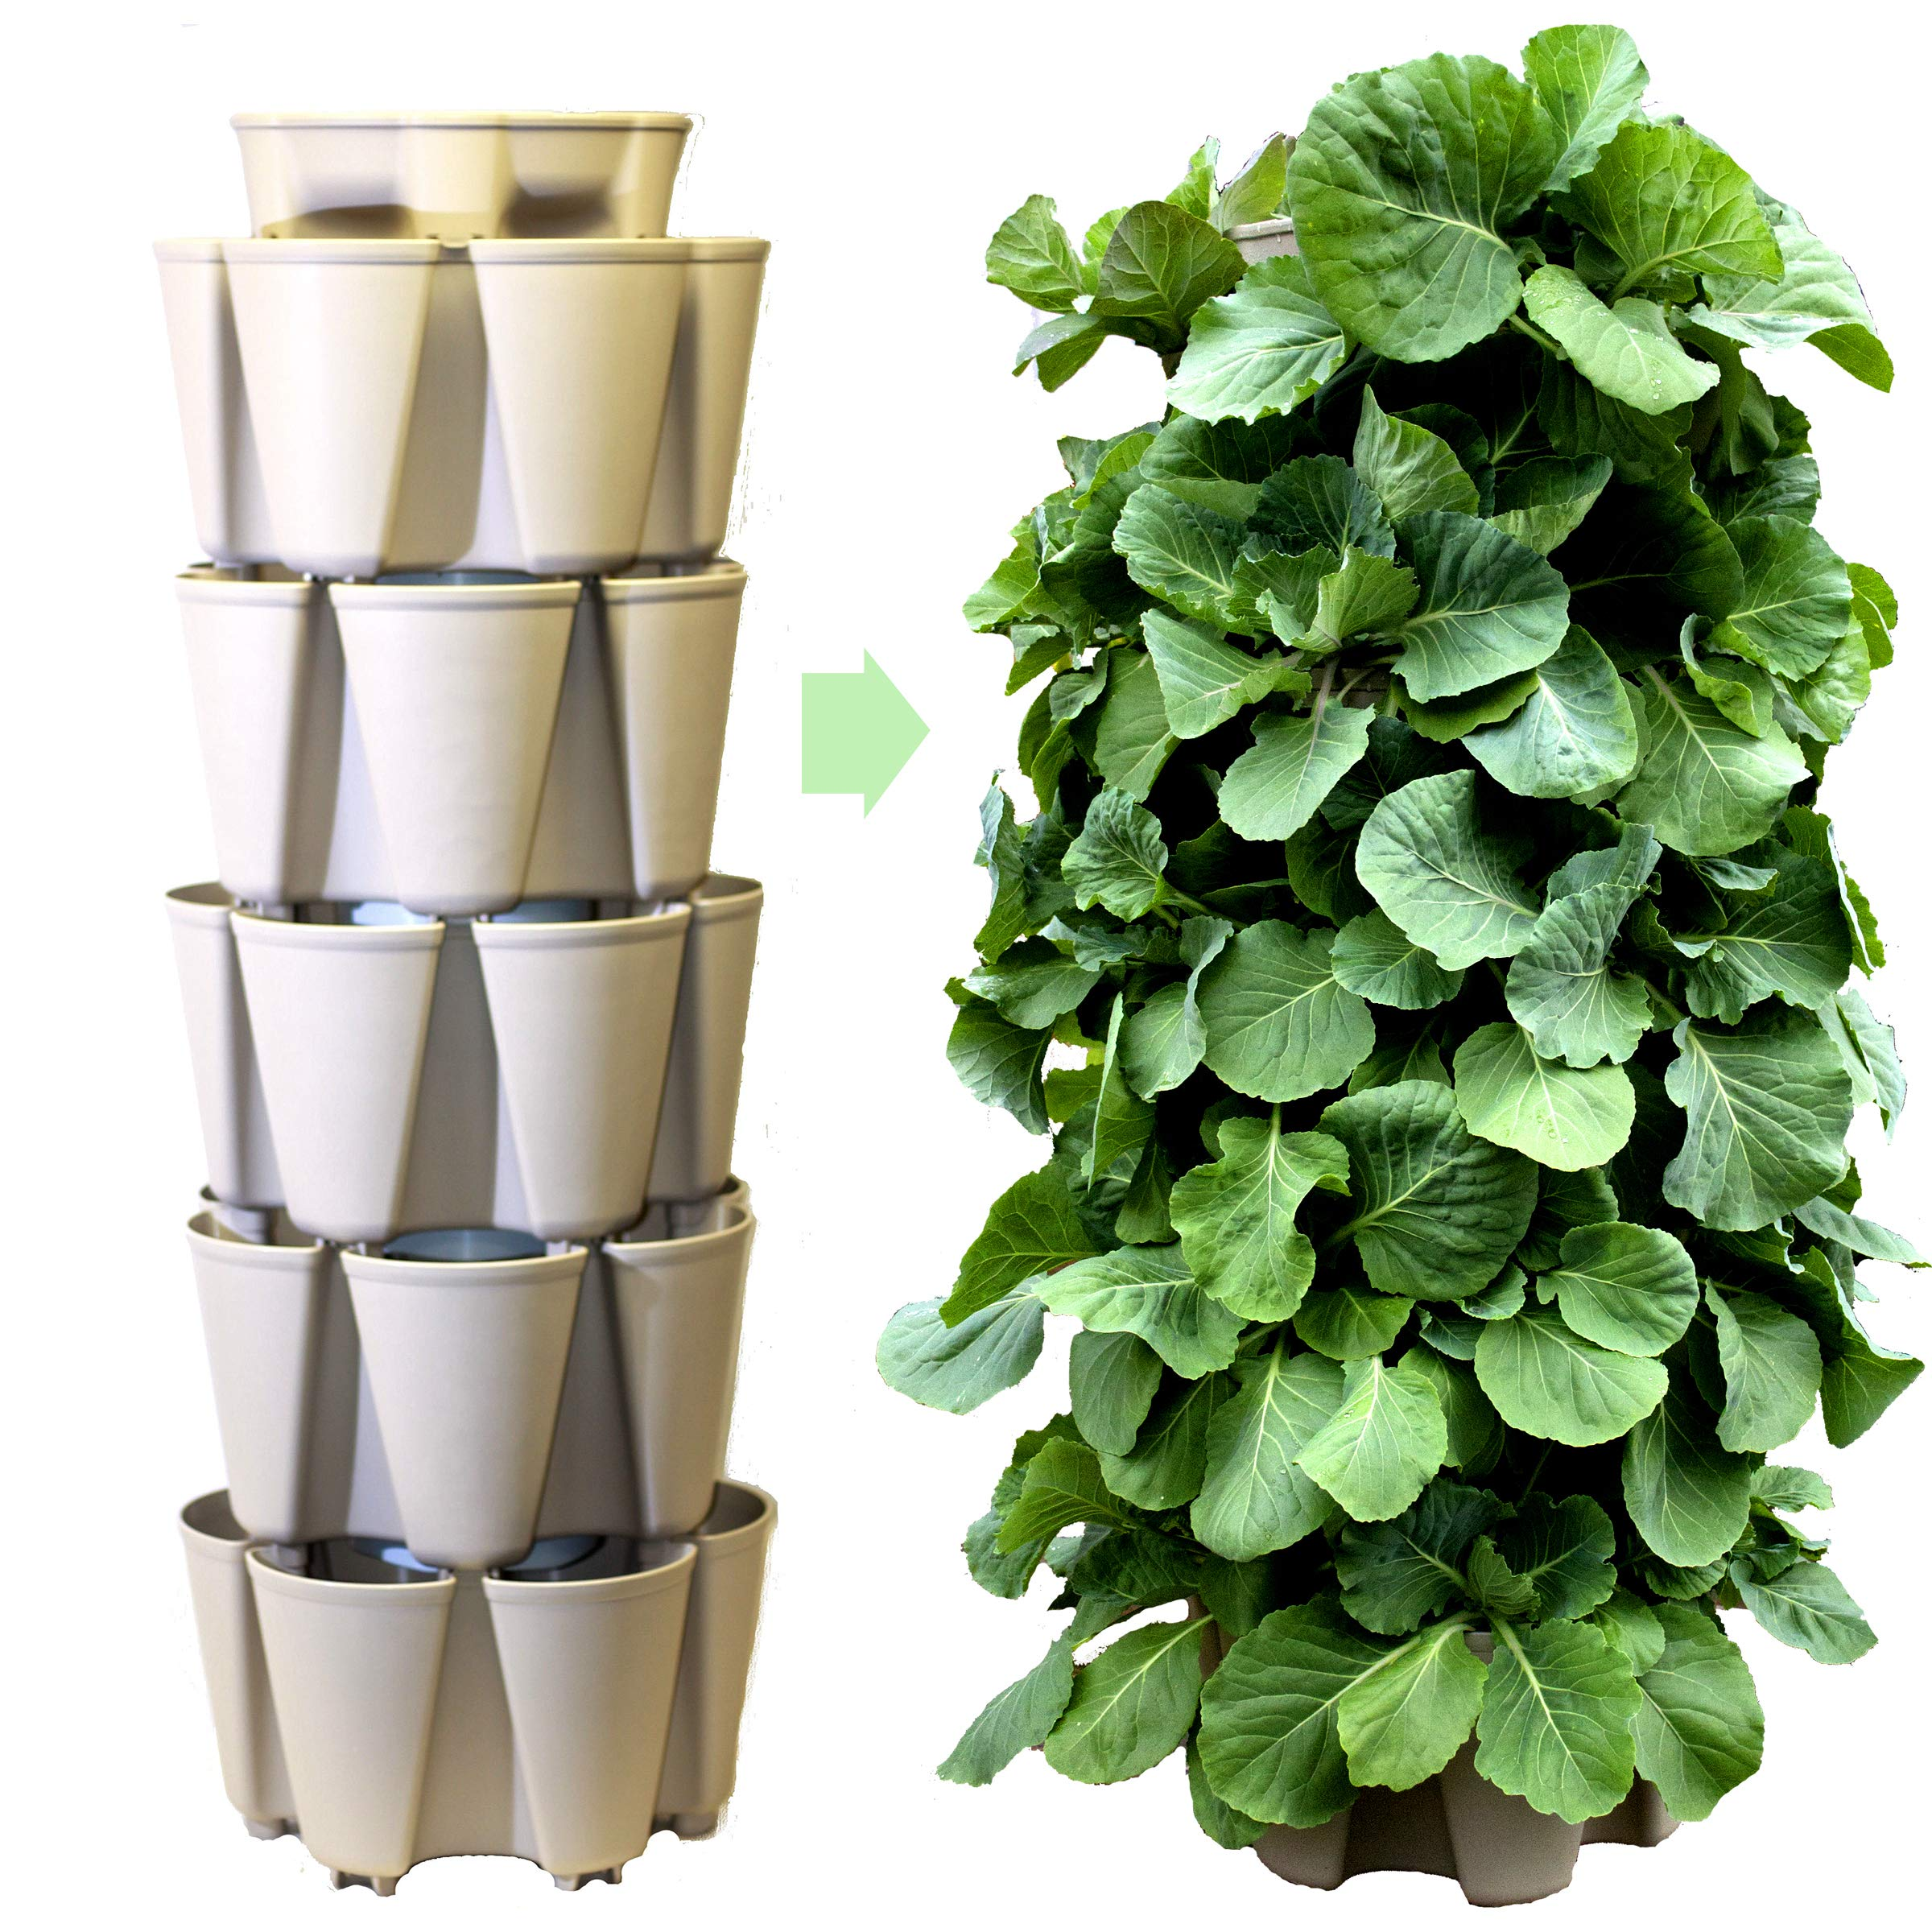 Huge GreenStalk 5 Tier Vertical Garden Planter w/Patented Internal Watering System Great for Growing a Variety of Strawberries, Vegetables, Herbs, Flowers on a Balcony or Deck (Stunning Stone)